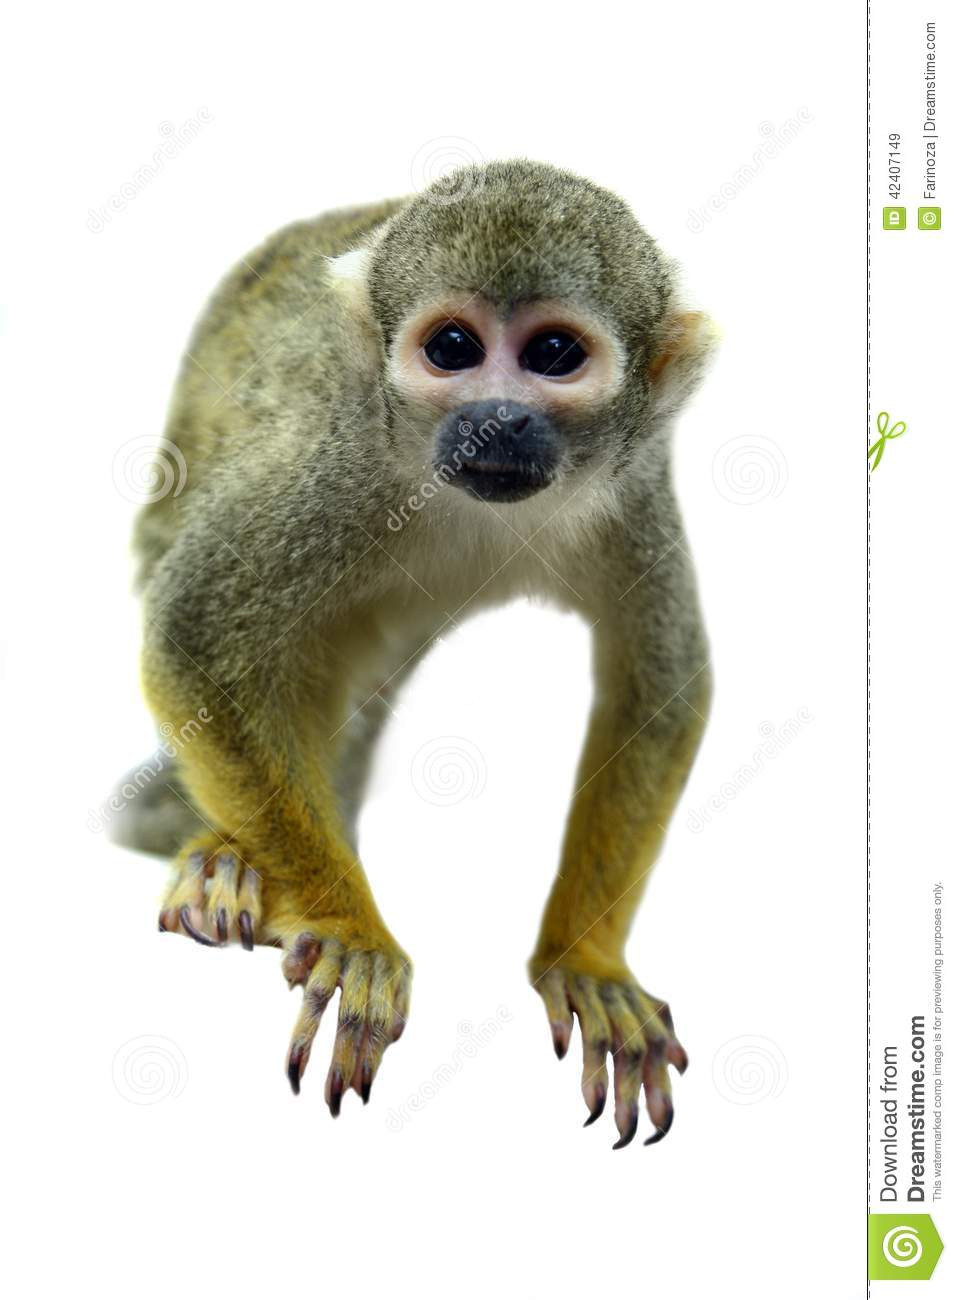 Squirrel Monkey clipart #16, Download drawings